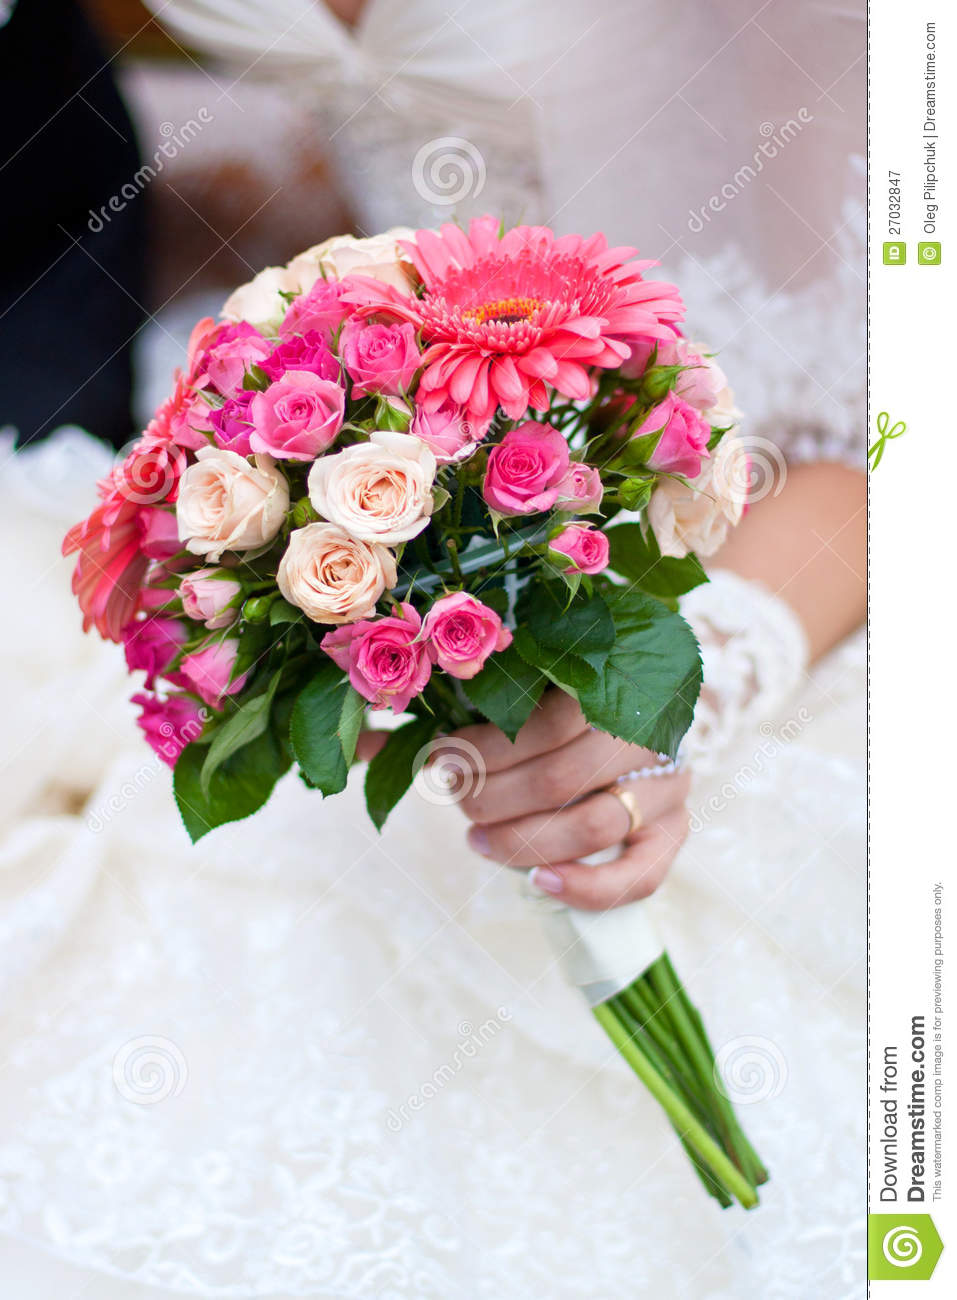 Wedding Bouquet With Pink Flowers Stock Image Image Of Vibrant